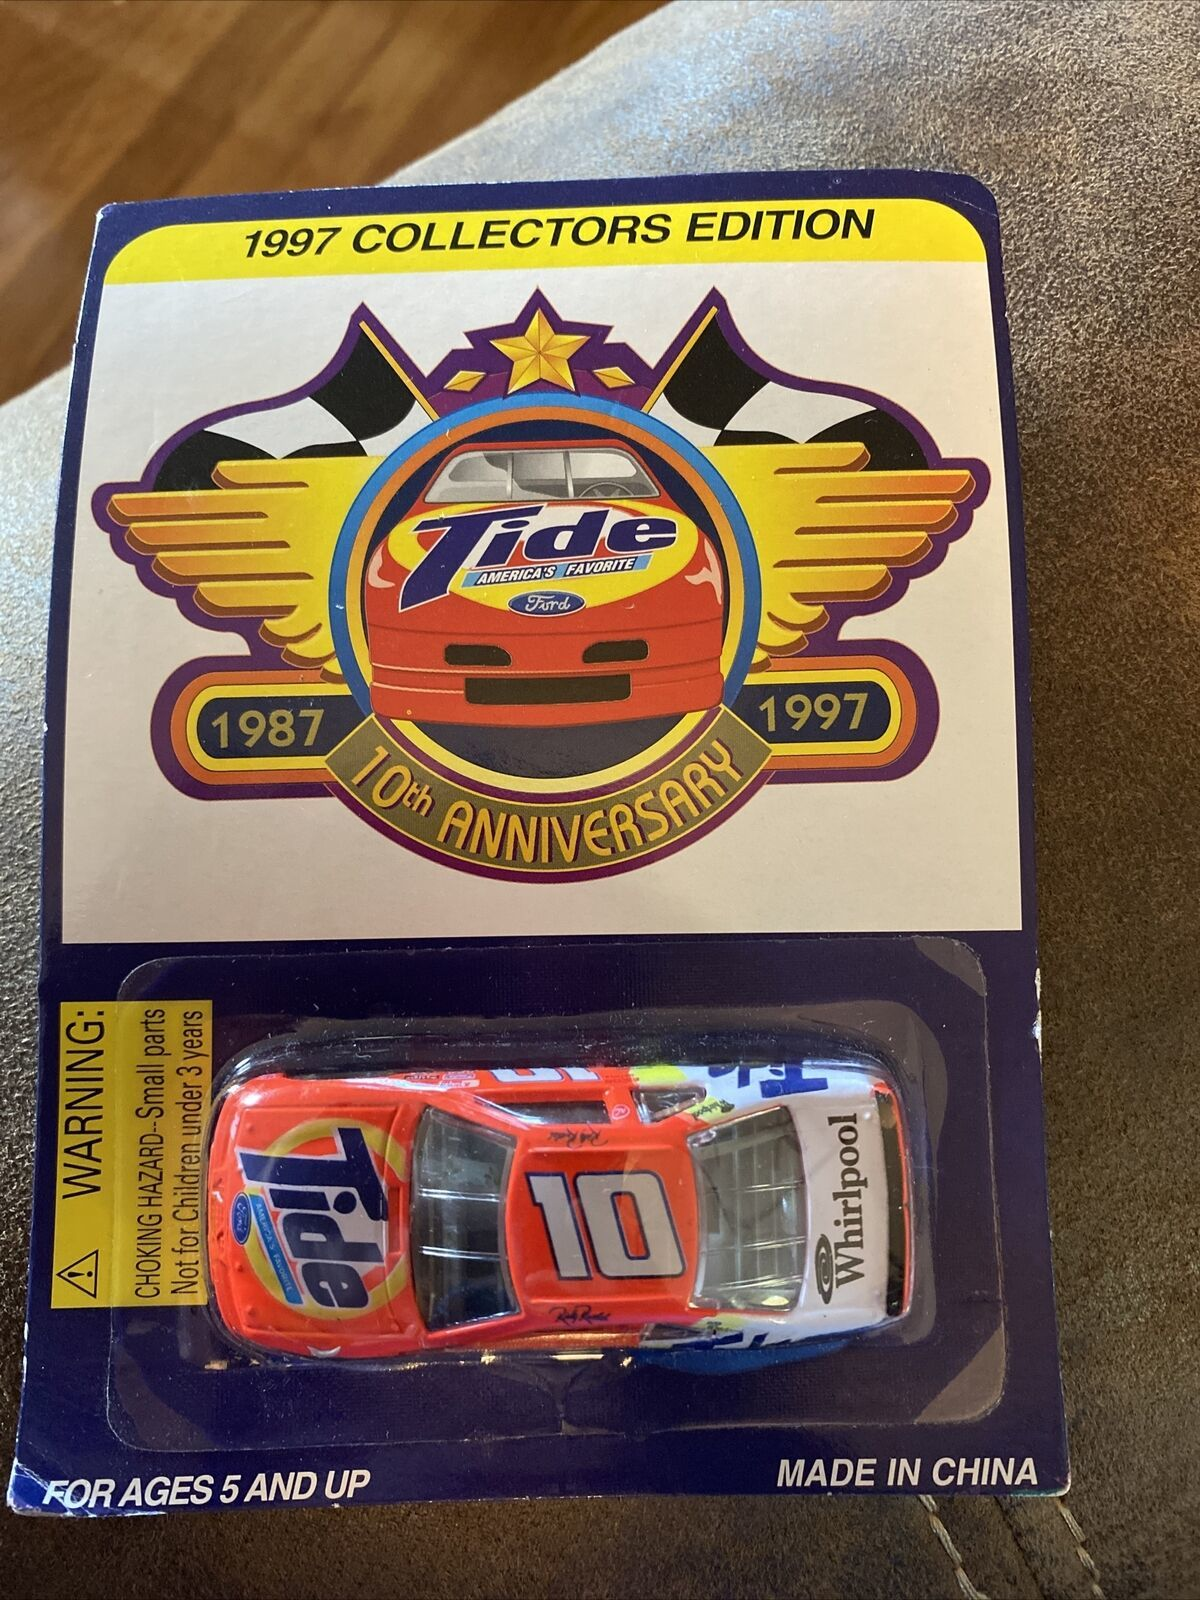 Nascar Tide 1997 die cast toy #10 Ricky Rudd 10th Anniversary Racing Champions - $13.86